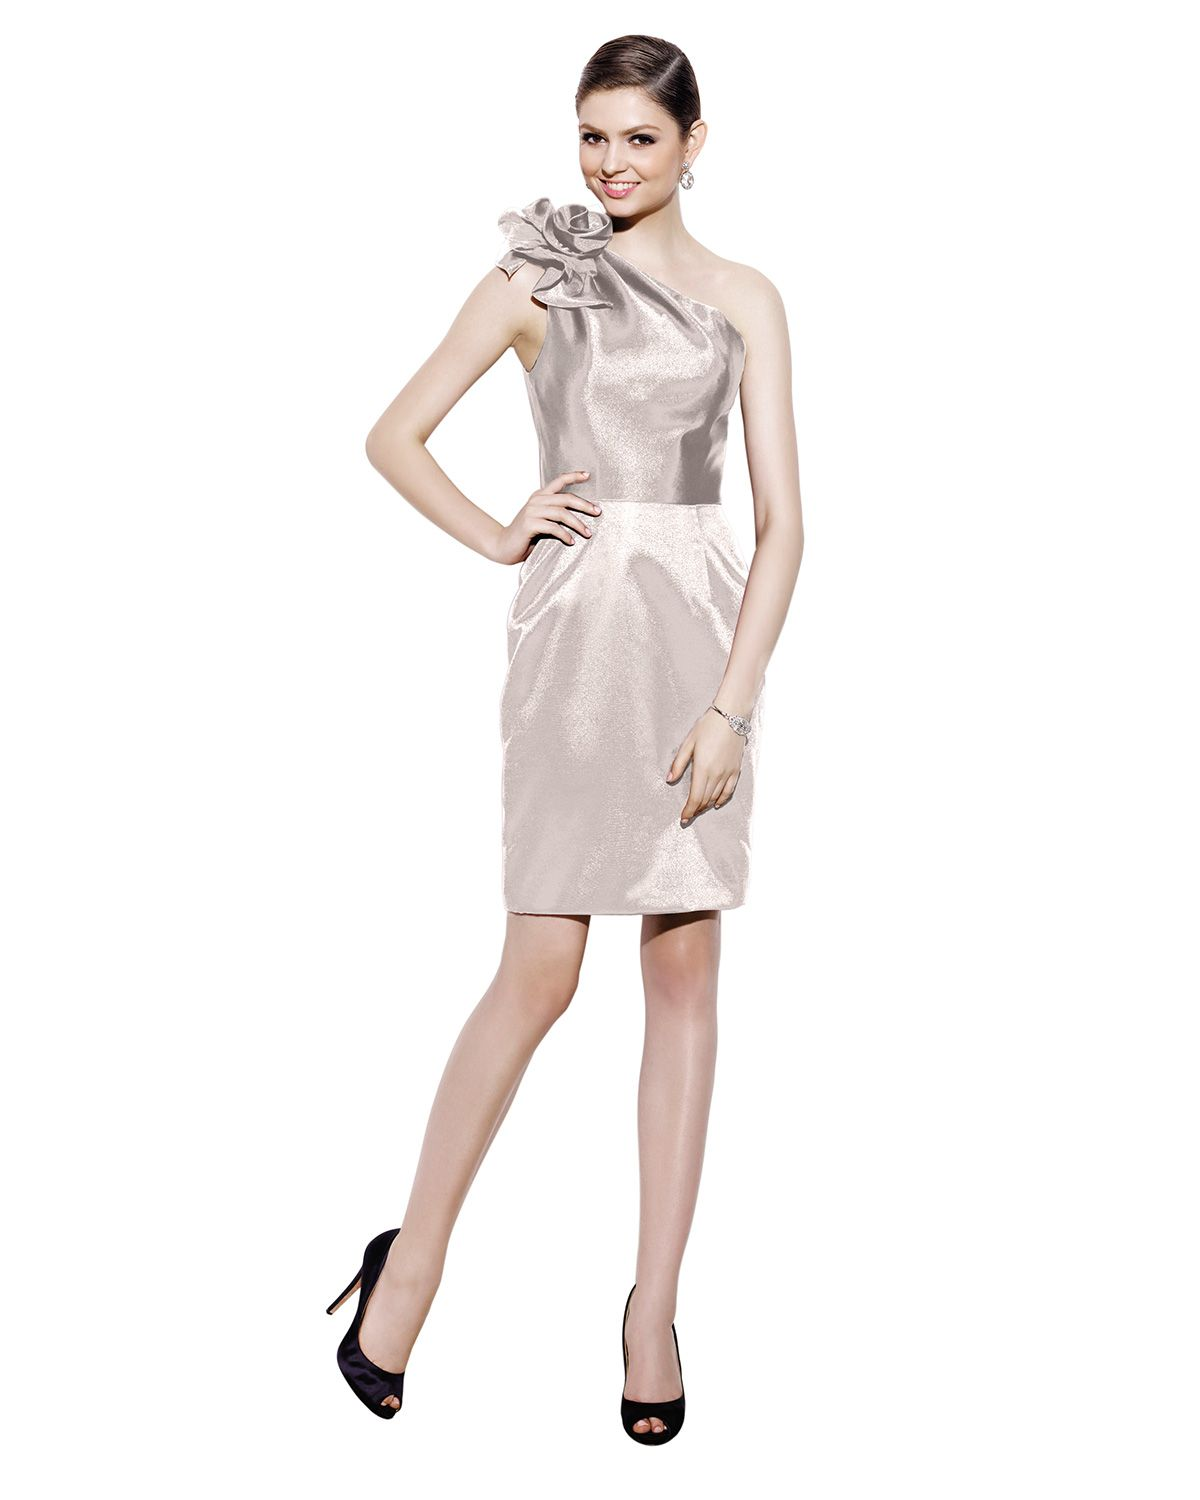 Badgley mischka bm10sh flower one shoulder short bridesmaids dress badgley mischka bm10sh flower one shoulder short bridesmaids dress now available at the official ombrellifo Gallery